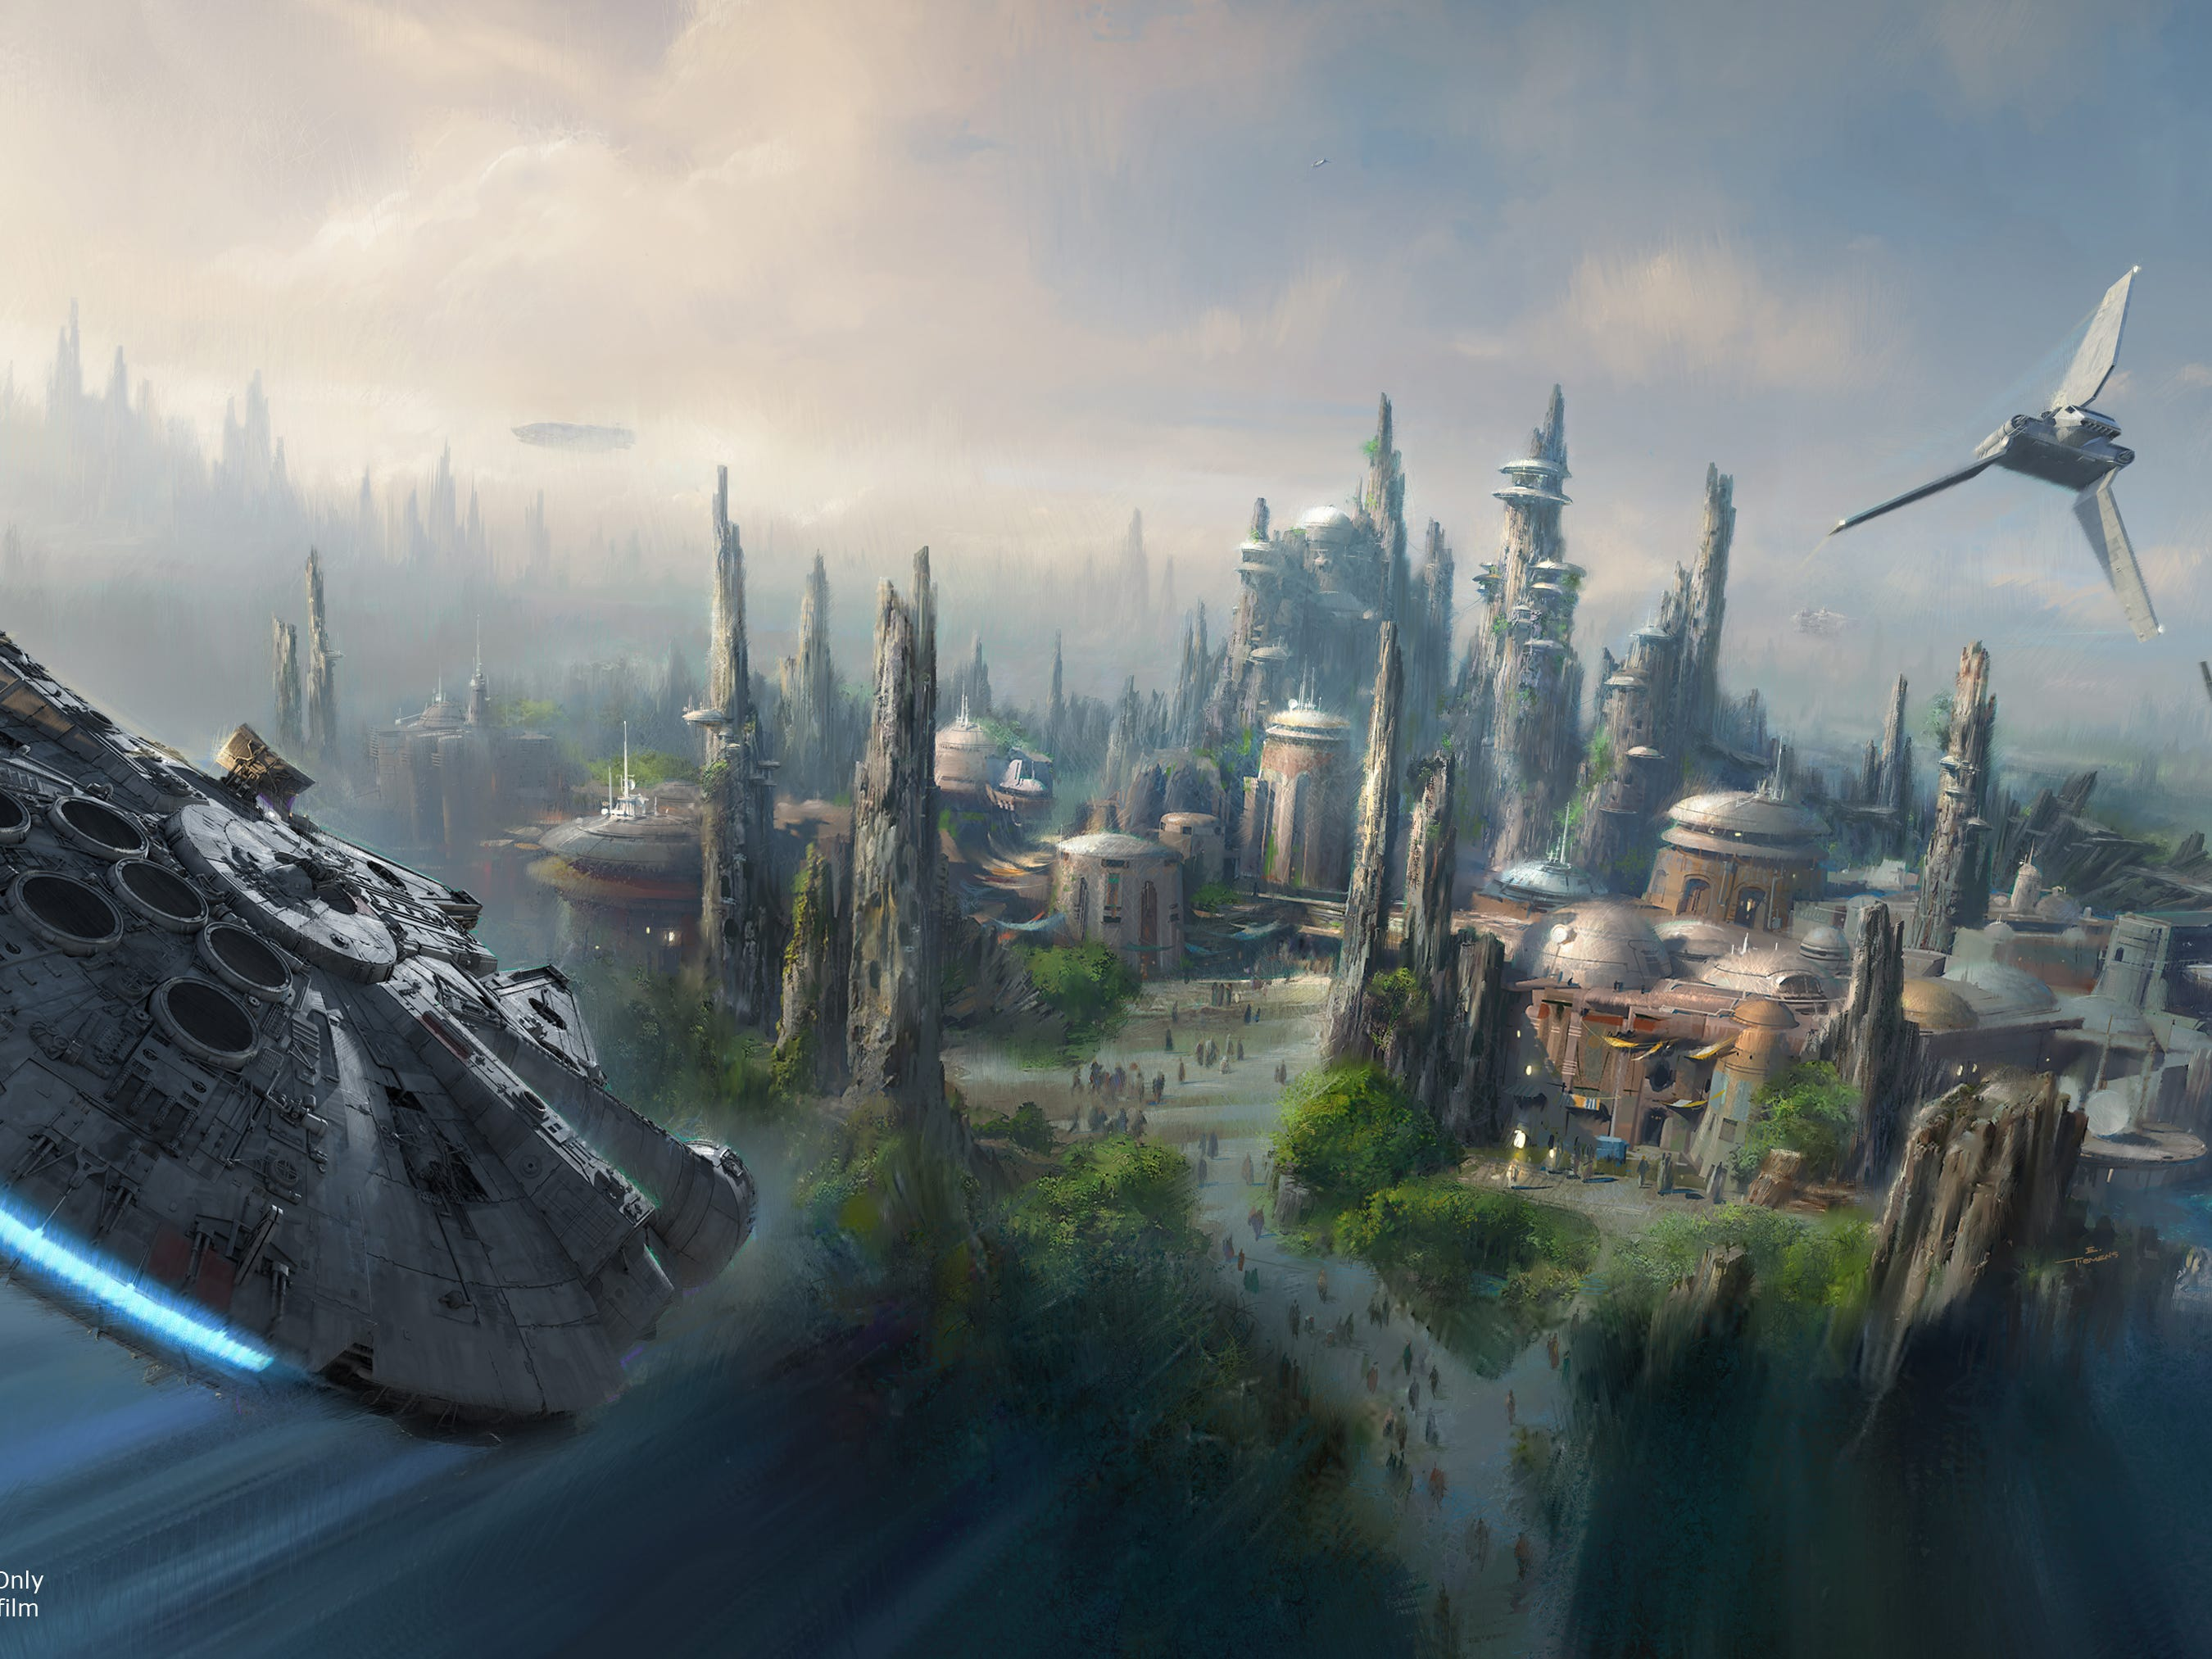 Star Wars: Galaxy's Edge opens May 31, 2019, at Disneyland.  Guests can become part of the Star Wars story as they sample galactic food and beverages, explore a collection of merchant shops and take the controls of the iconic Millennium Falcon.